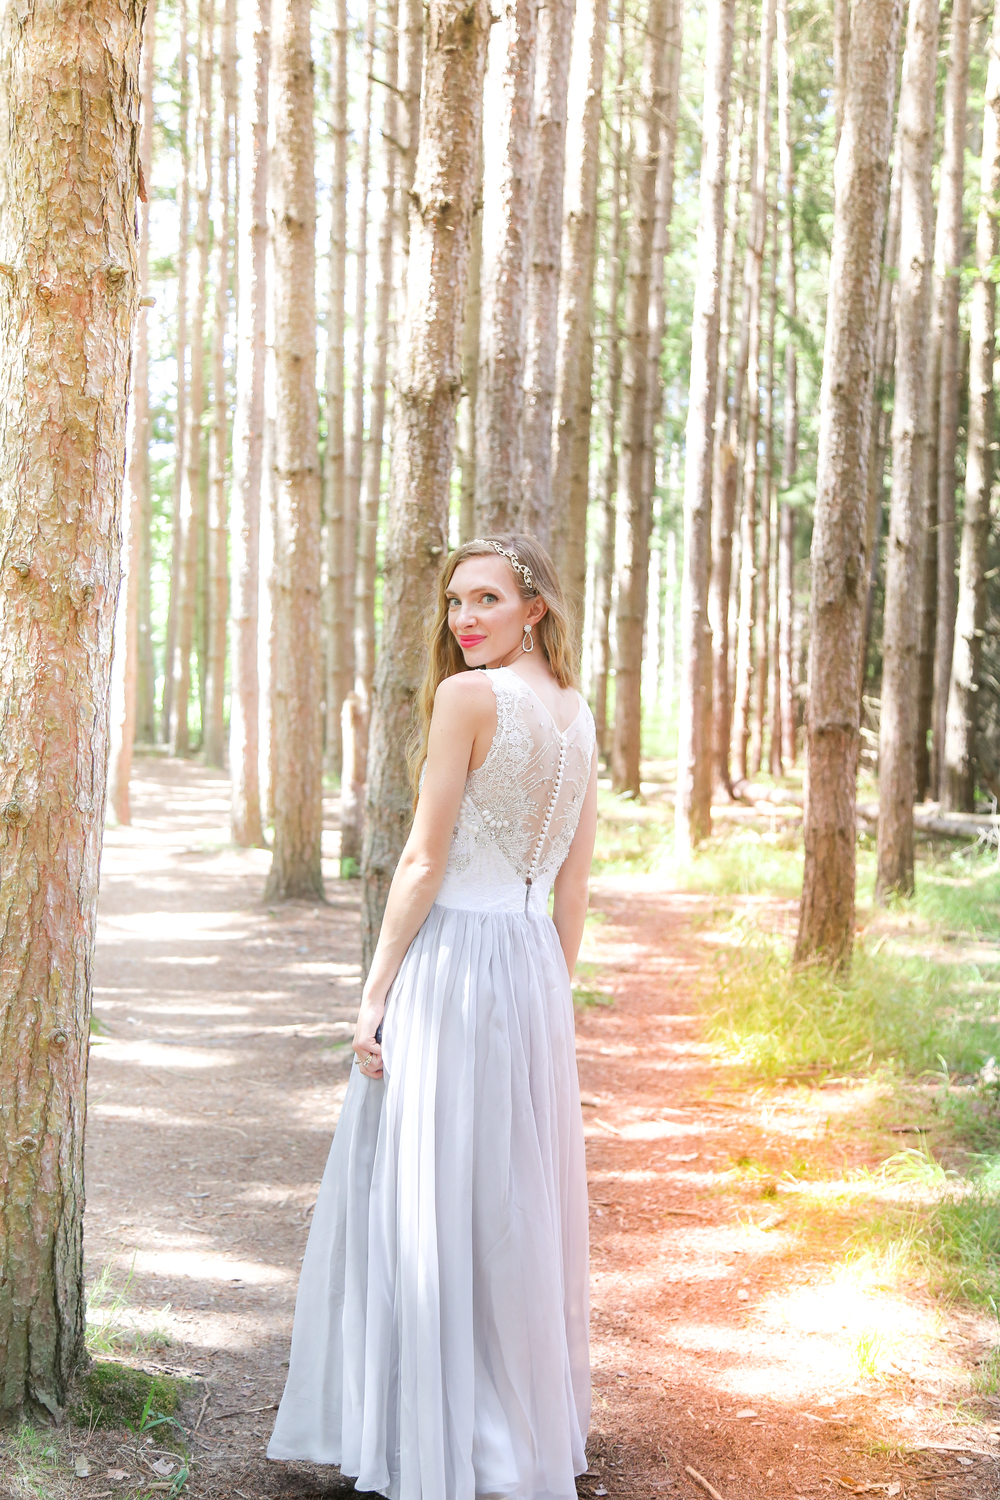 Enchanted Forest- Enchanting Elegance